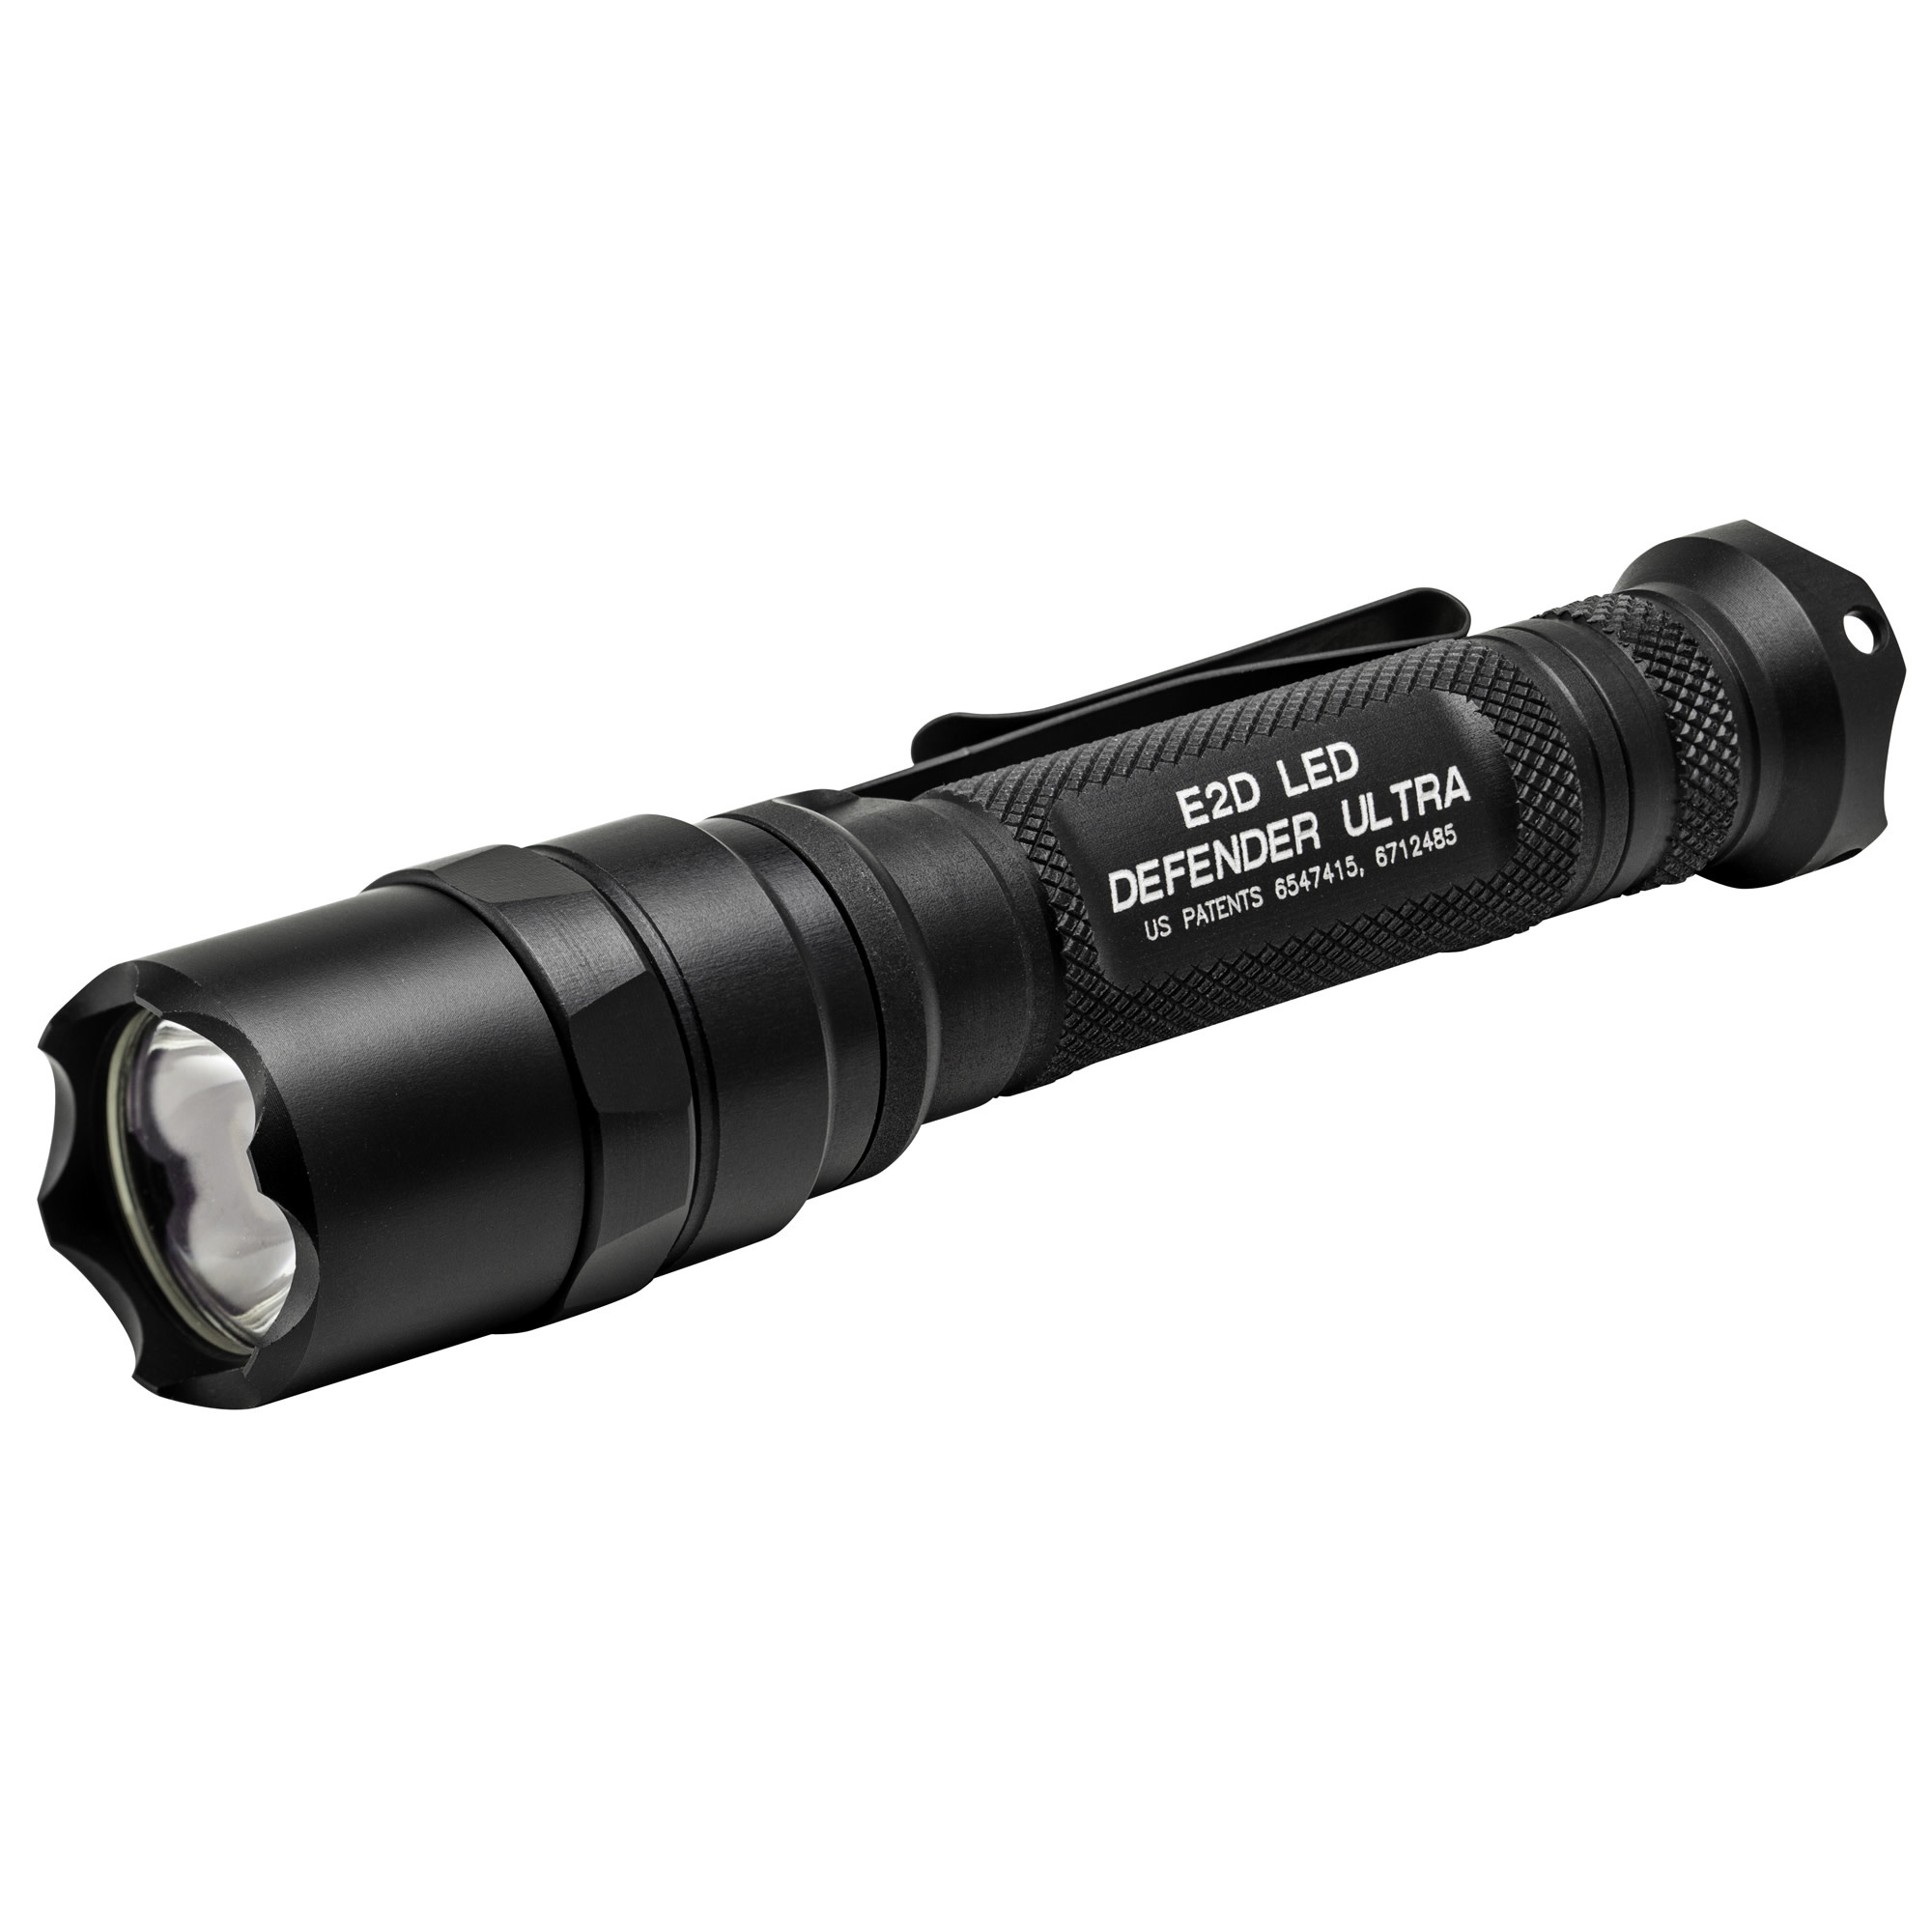 Surefire E2D Defender Ultra, 1000/5 lumens, Black anodized